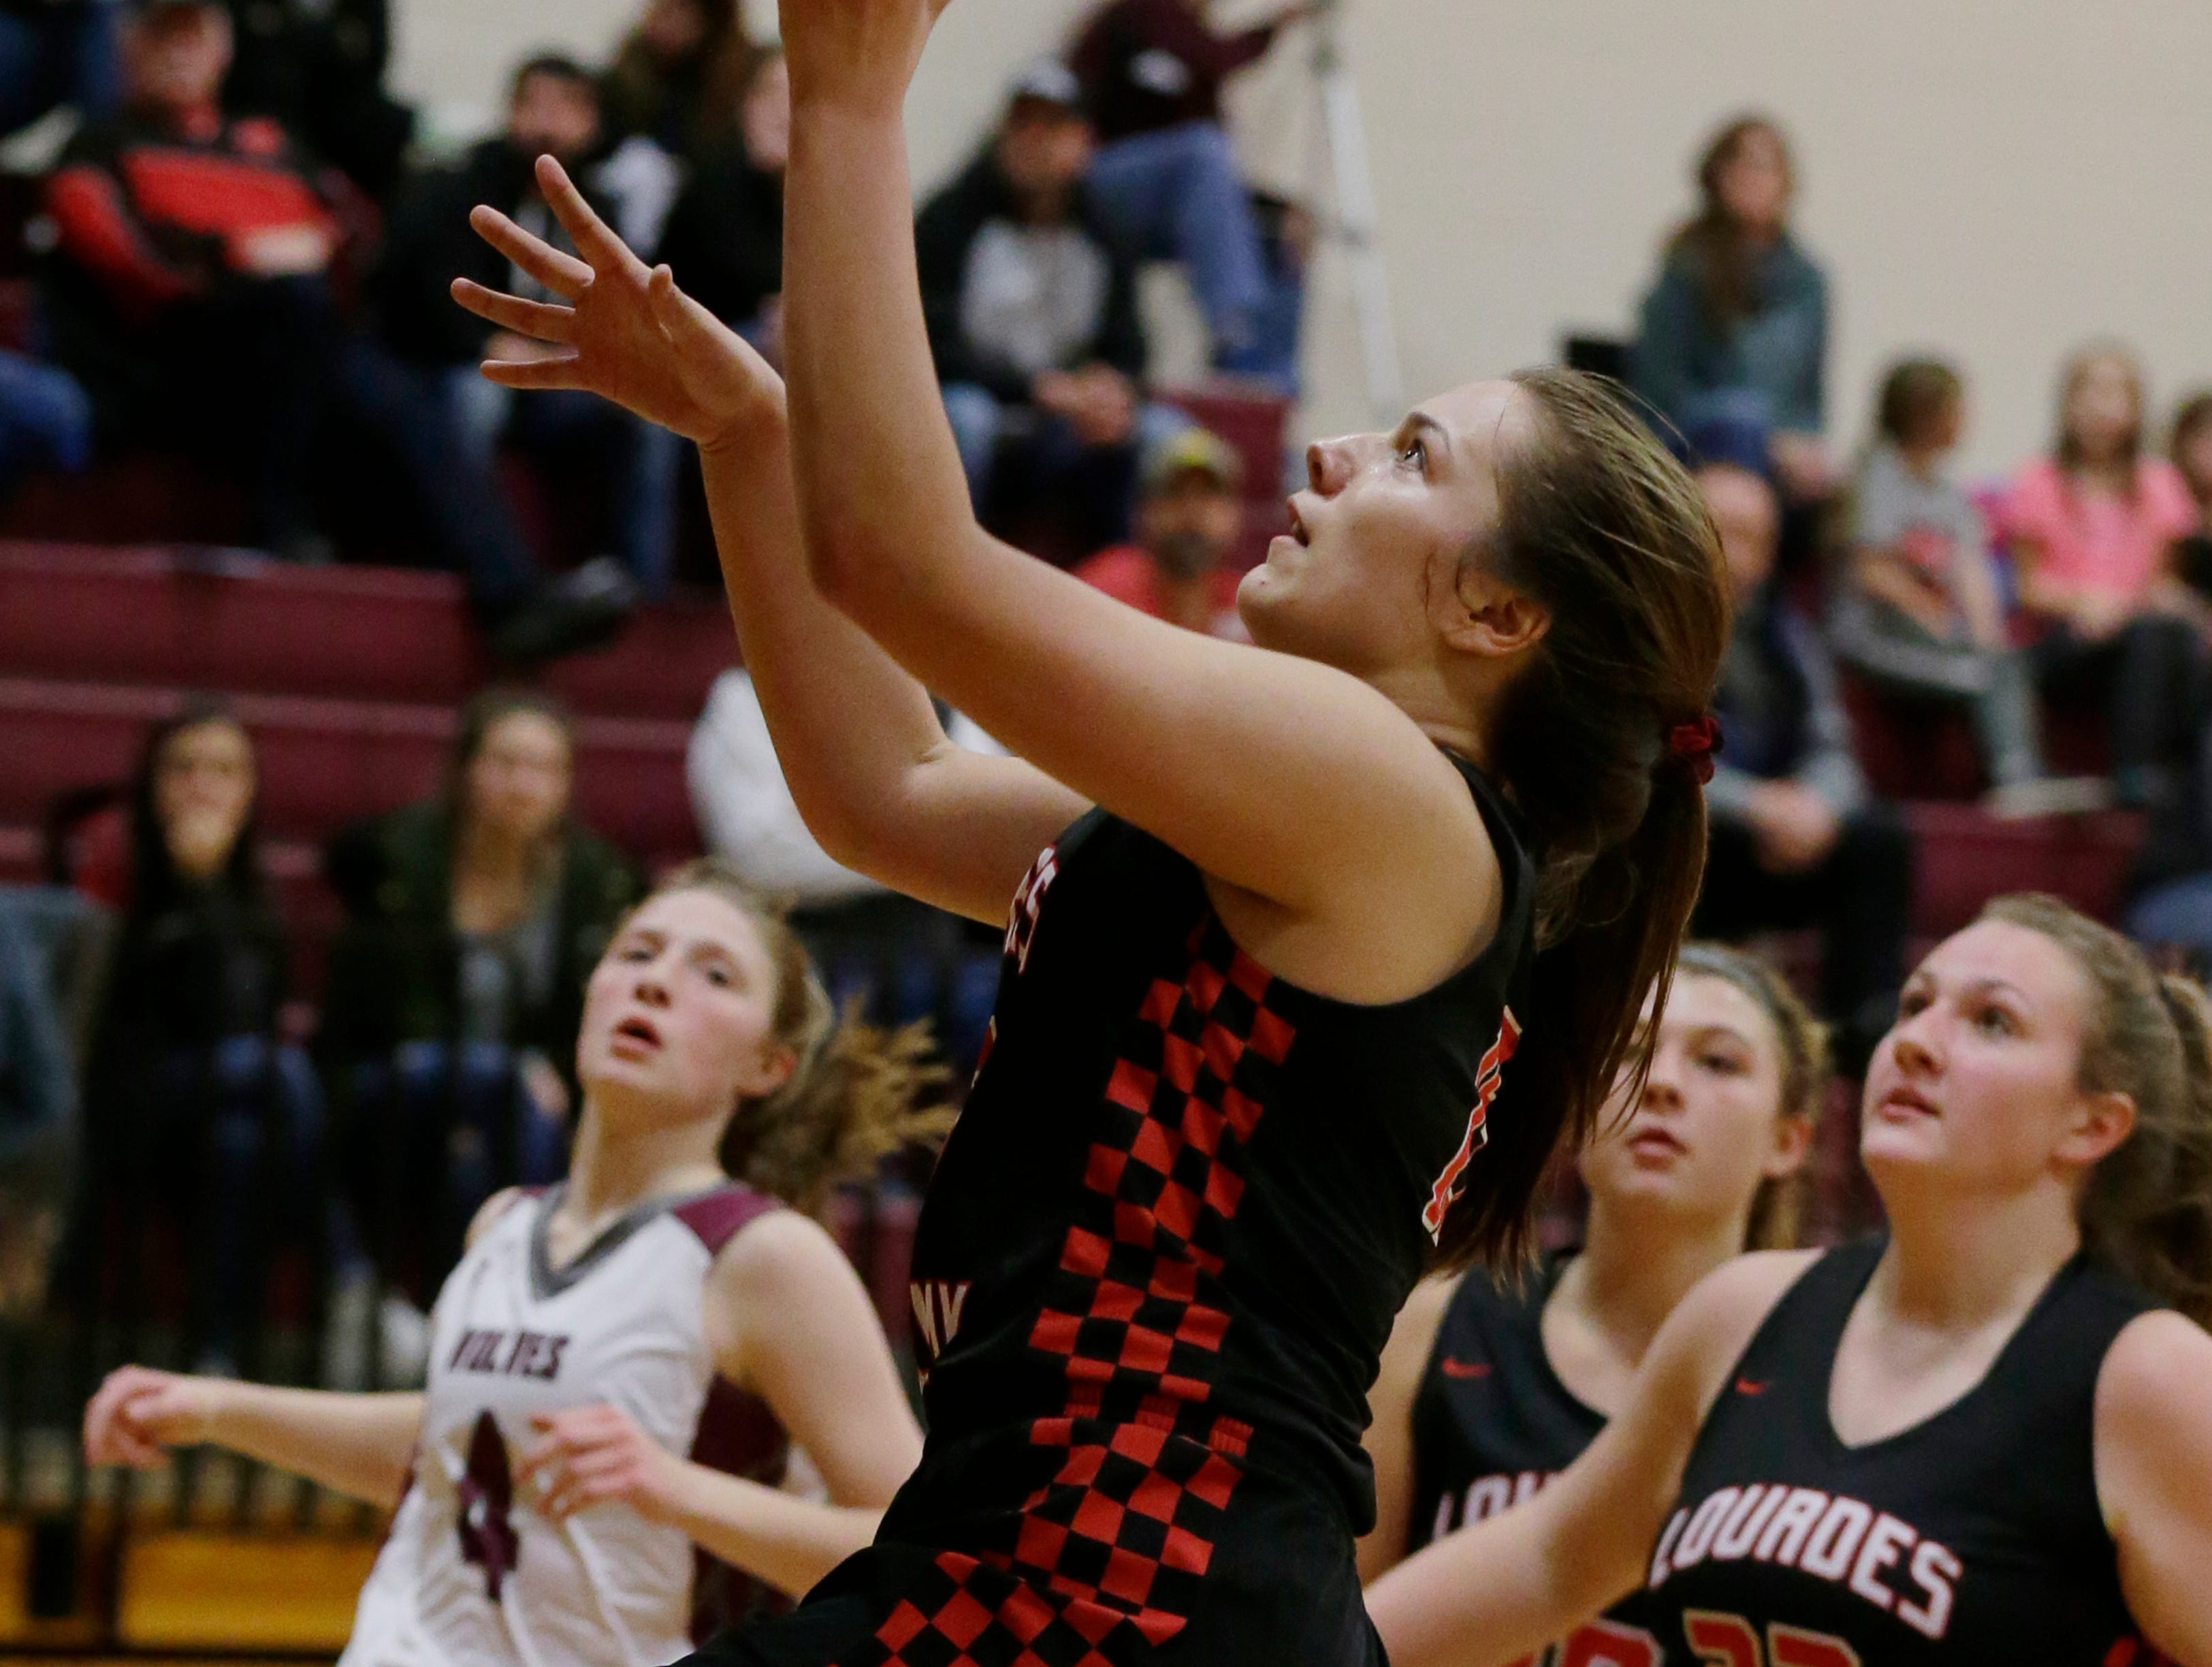 Lourdes Academy's Raechel Russo hits a layup on a fast break against Winneconne. Winneconne Wolves played Lourdes Academy Knights, Tuesday, Dec. 11, 2018.  Winneconne won 56 - 44.